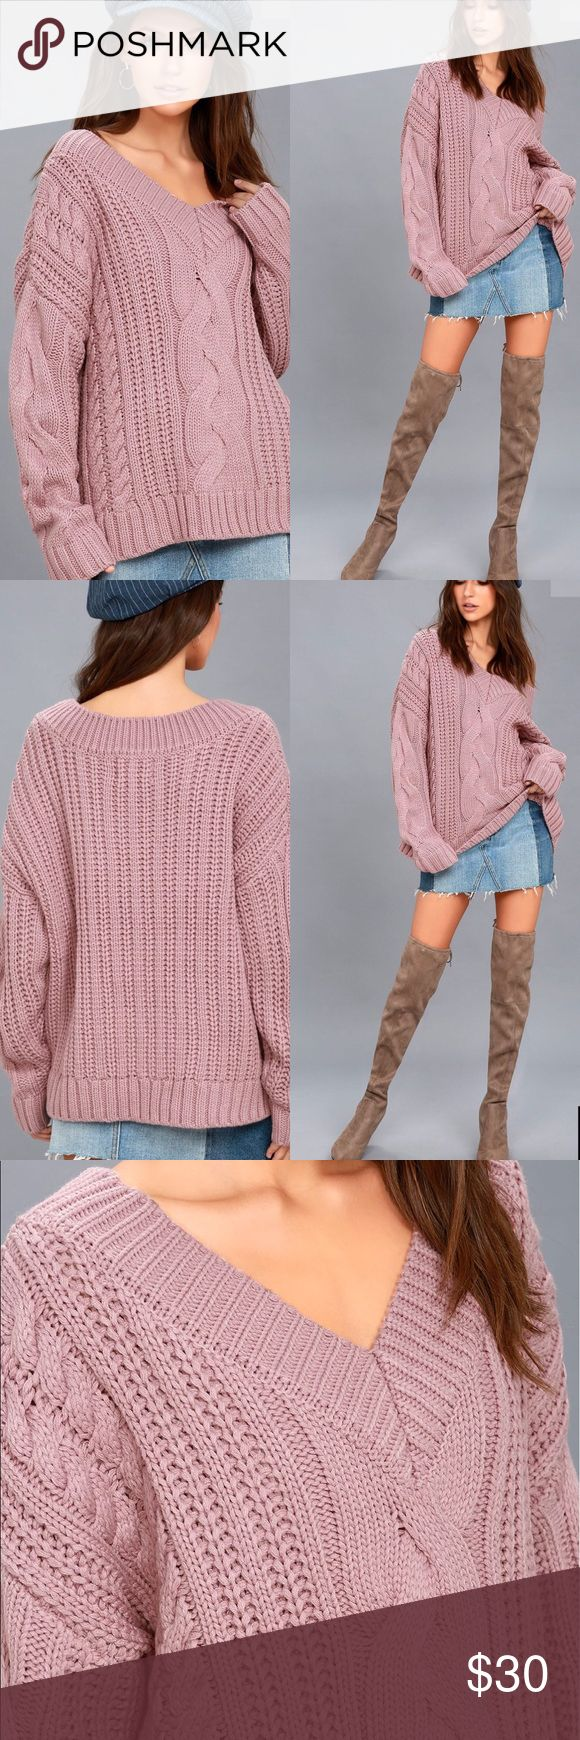 🆕 Mauve Pink Cable Knit  Sweater There is nothing better than getting bundled up in the Moon River Camp Cozy Mauve Pink Cable Knit Sweater! A chunky, cable knit sweater has long, drop sleeves, a ribbed V-neckline, and ribbed cuffs and hem. Unlined. 100% Acrylic. Moon River Sweaters